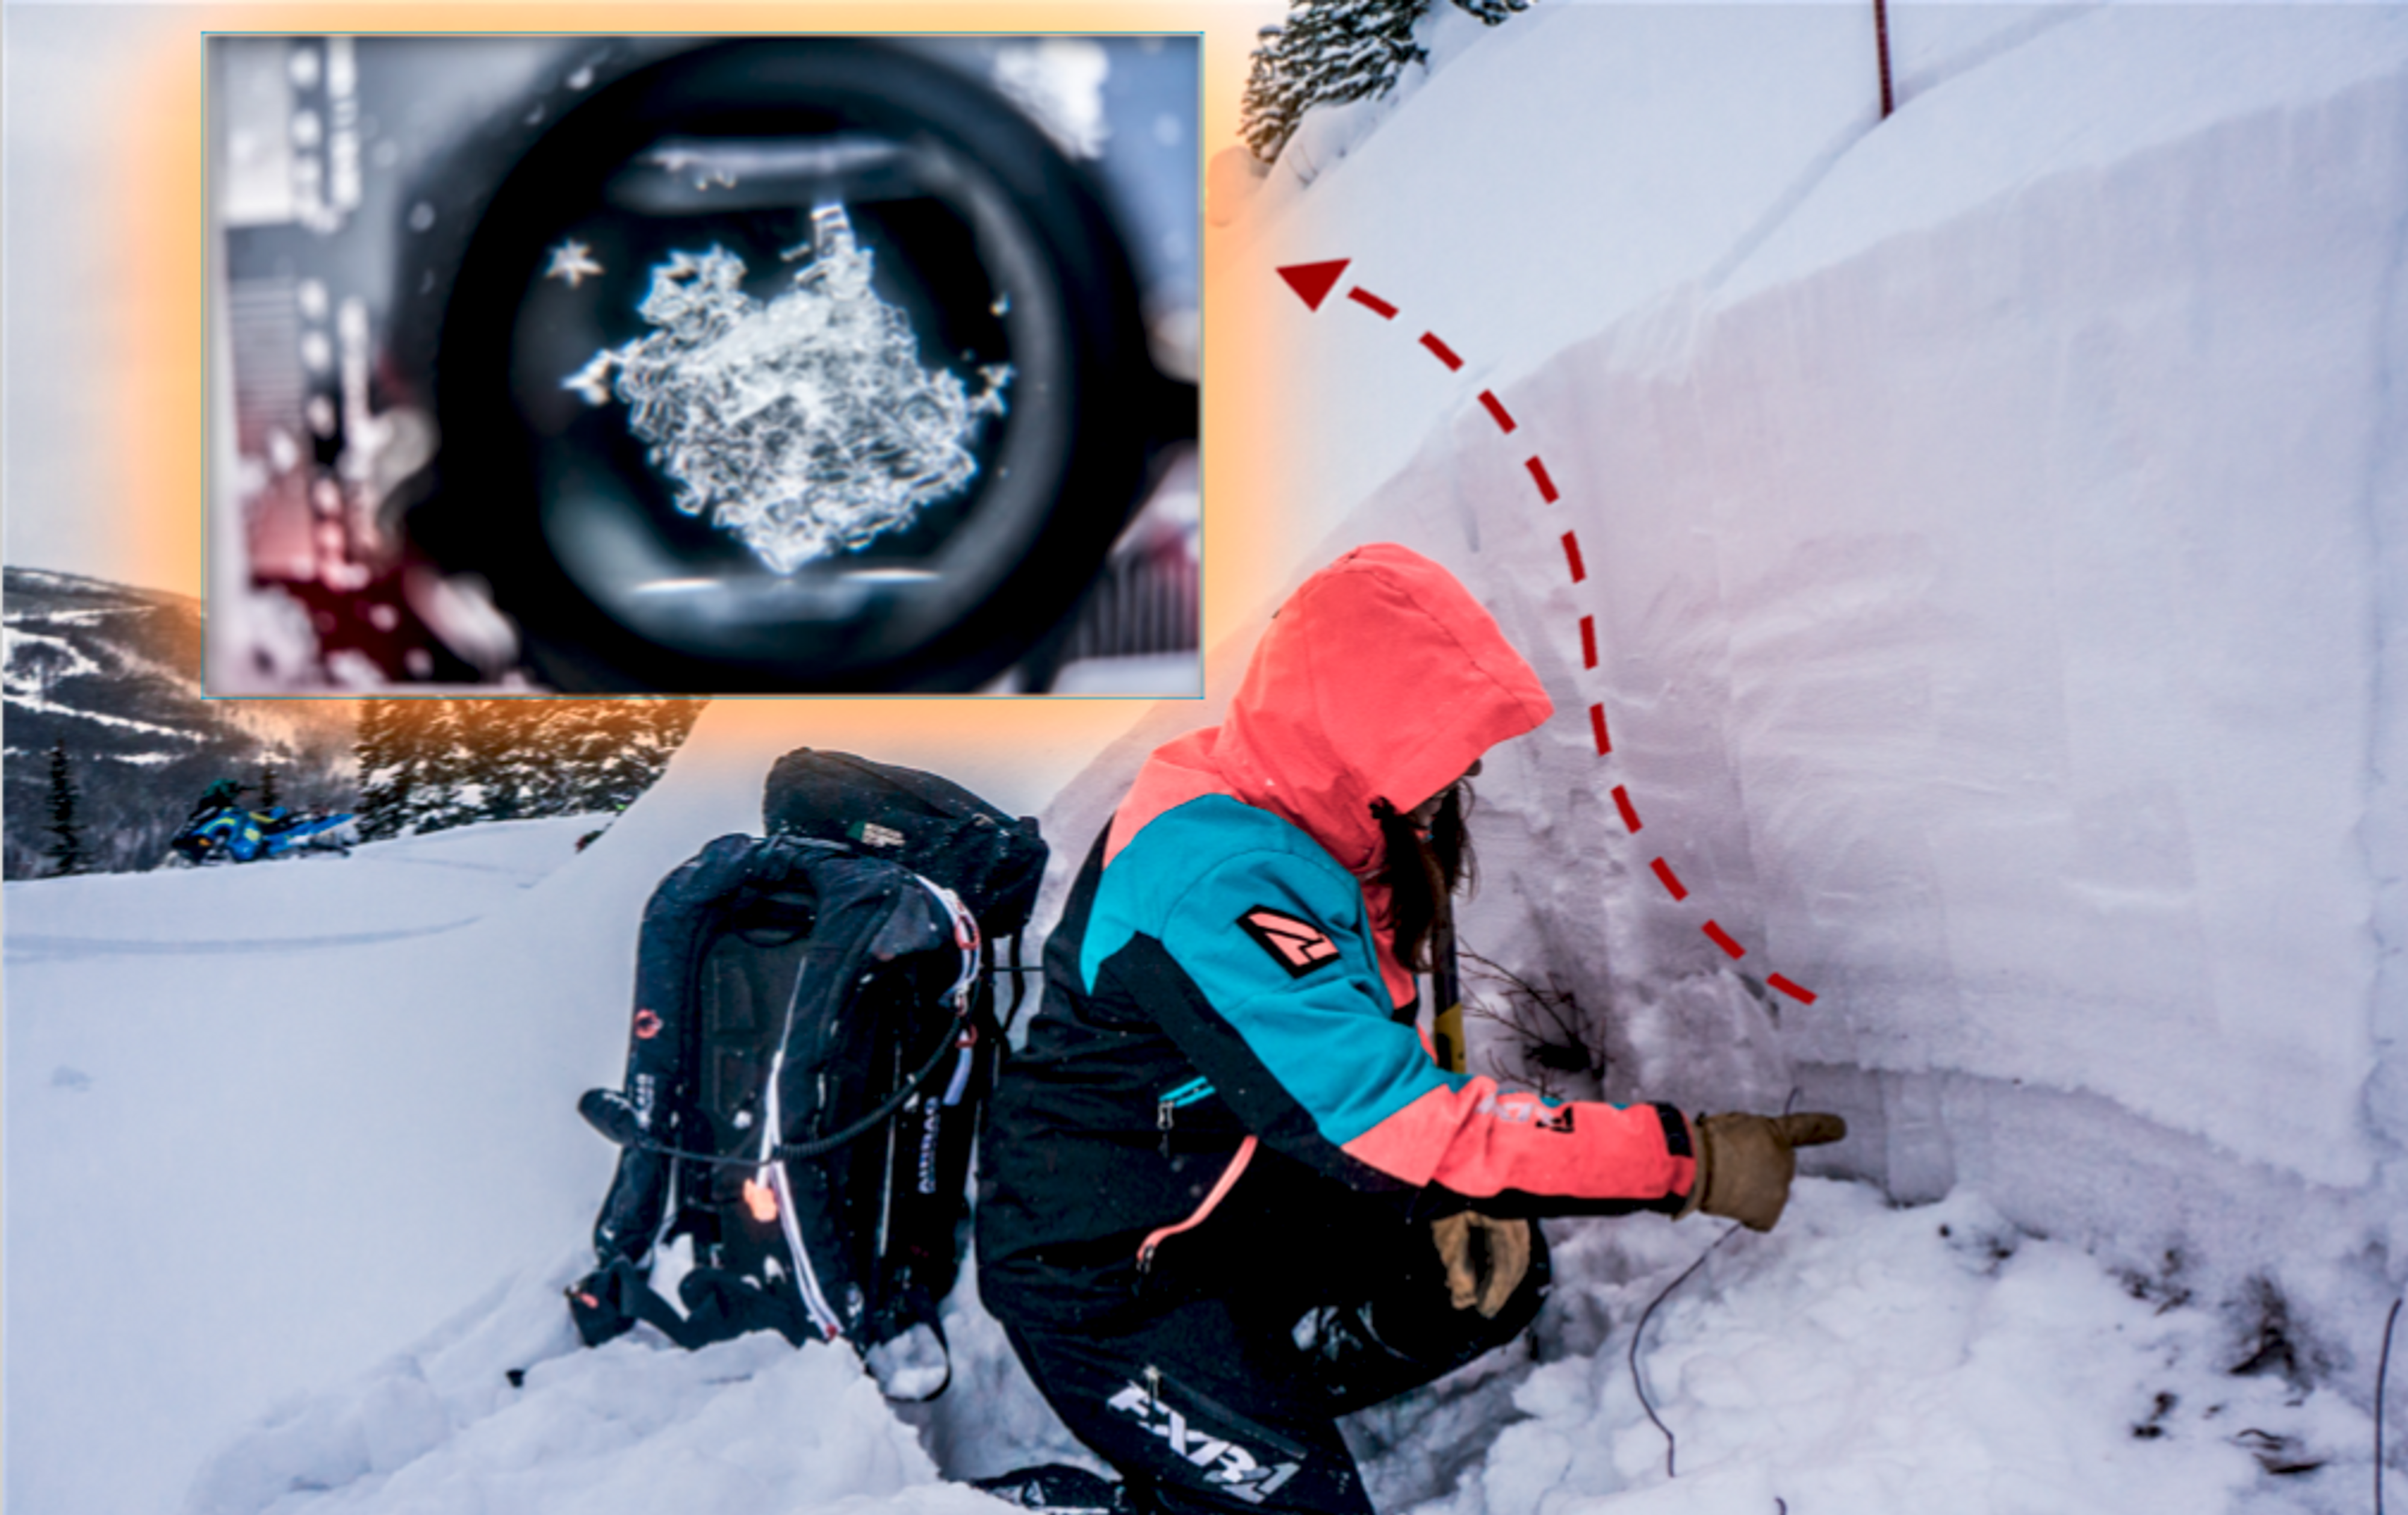 These are large, cup-shaped crystals that most commonly form at the base of shallow snowpacks in cold climates. It can create a deep persistent weak layer that lasts for an entire season.